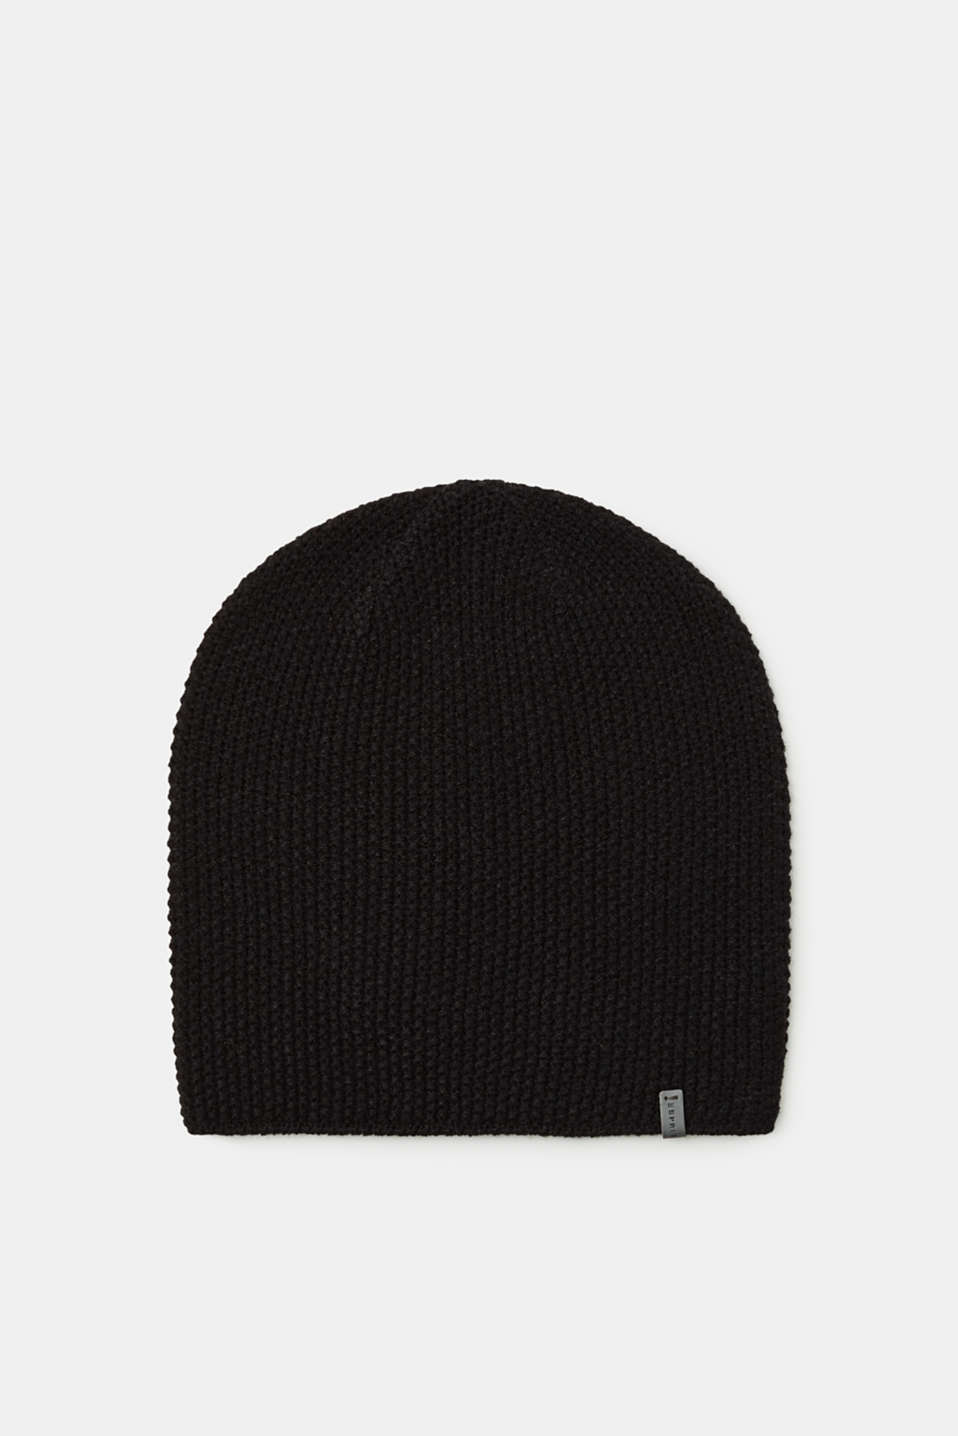 Esprit - Hat with a knitted texture